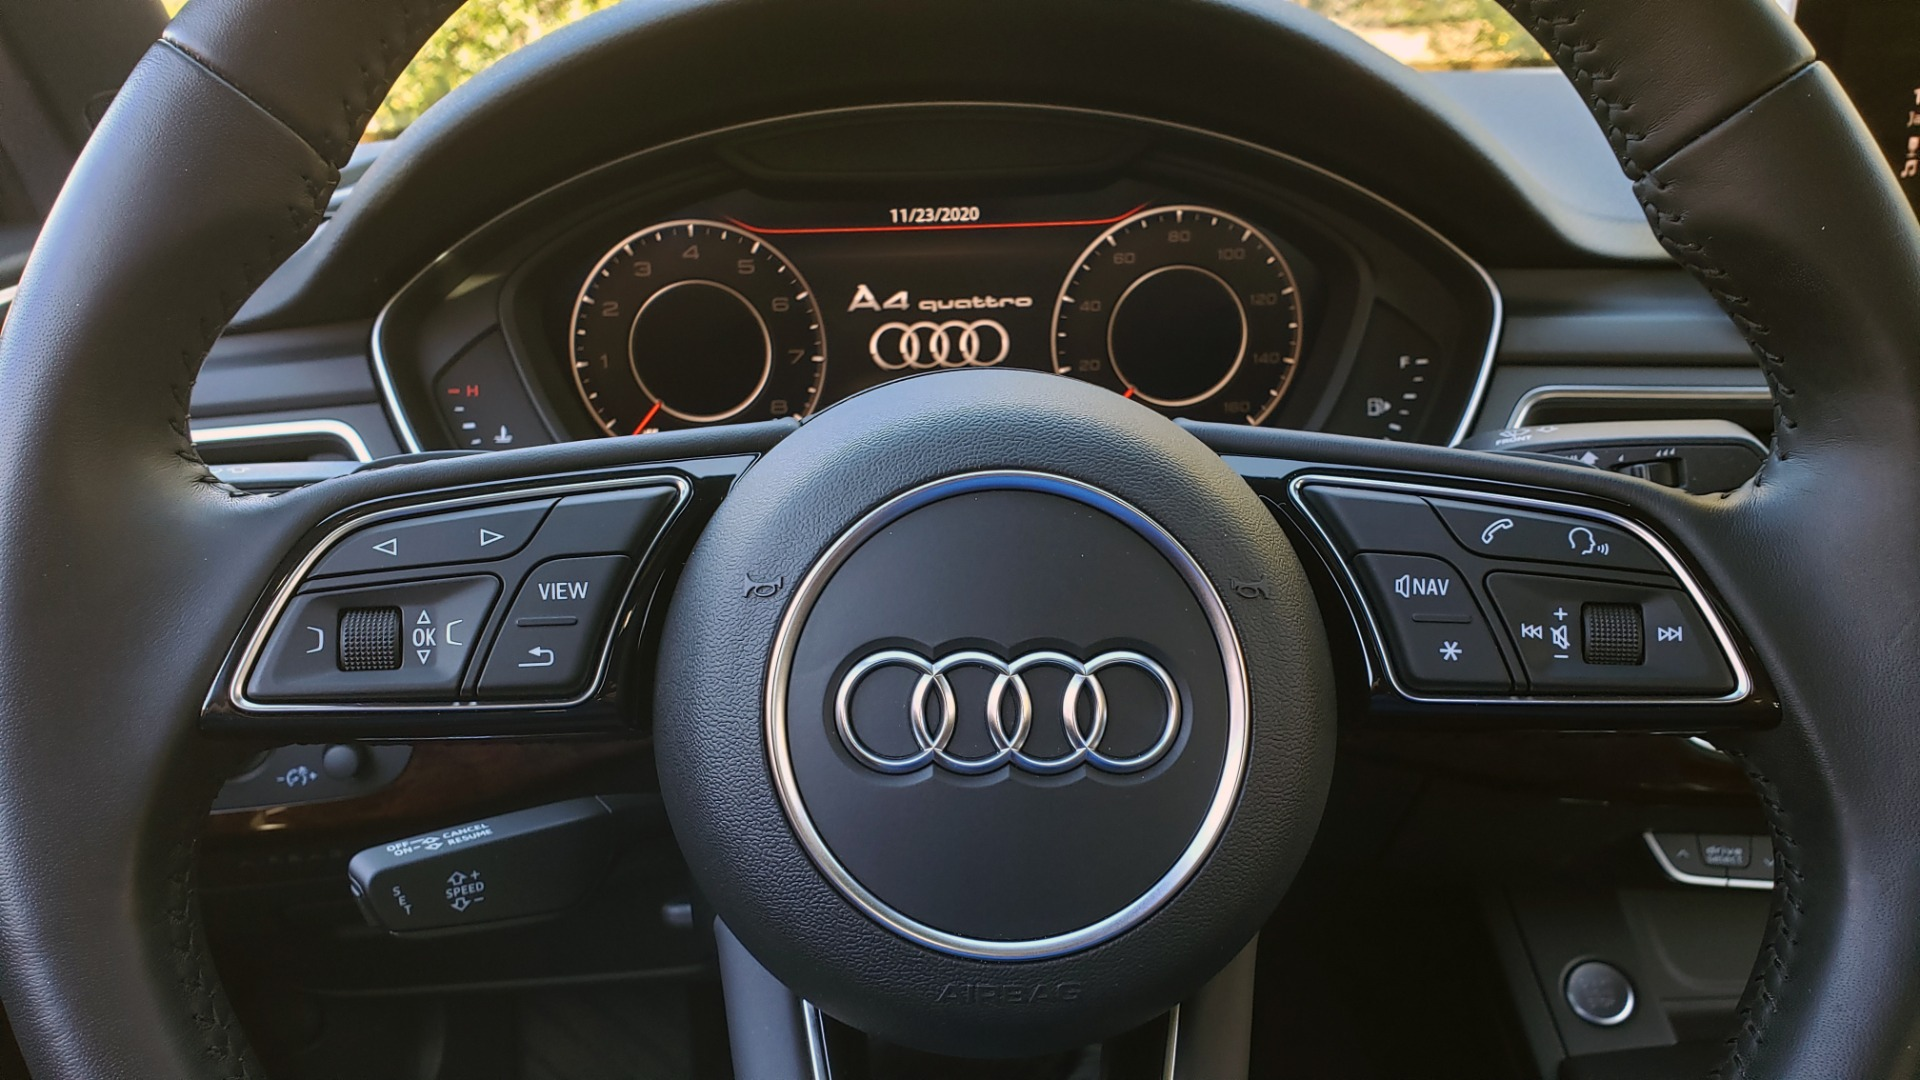 Used 2017 Audi A4 PREMIUM PLUS / TECH PKG / B&O SND / S-LINE / NAV / REARVIEW for sale Sold at Formula Imports in Charlotte NC 28227 40